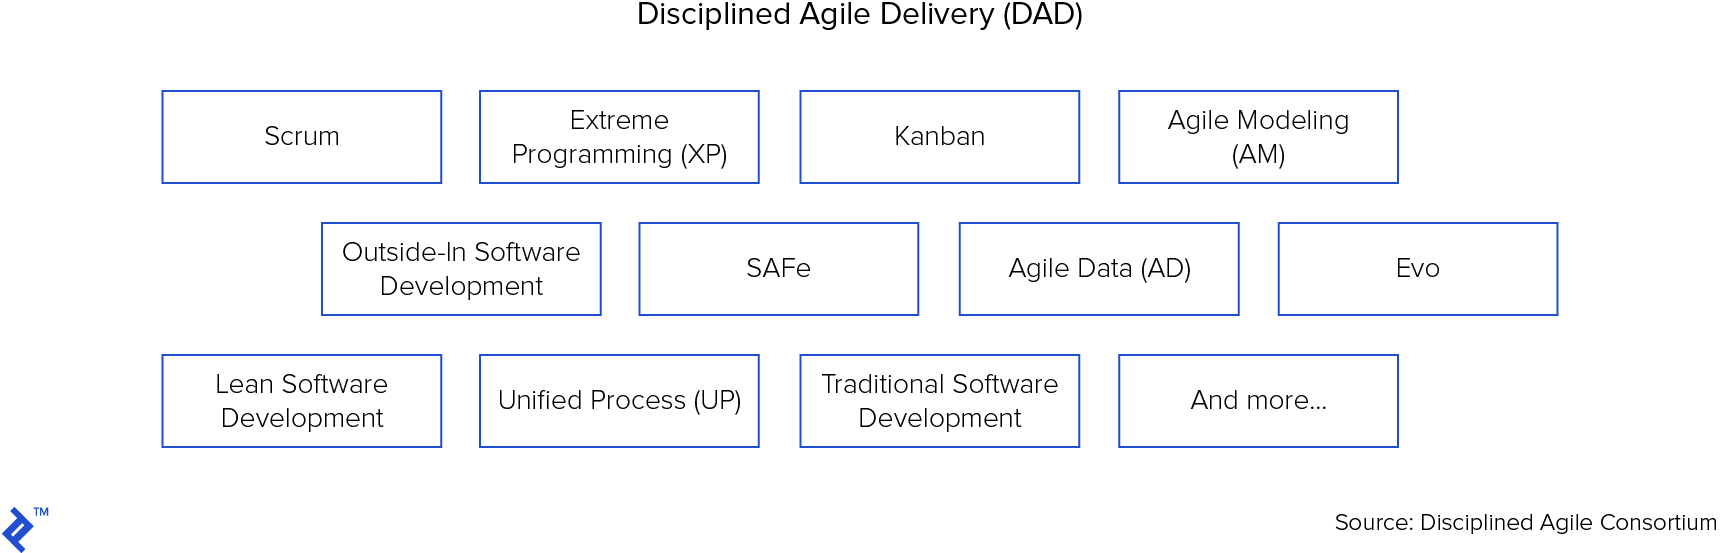 Disciplined agile delivery draws inspiration from many sources